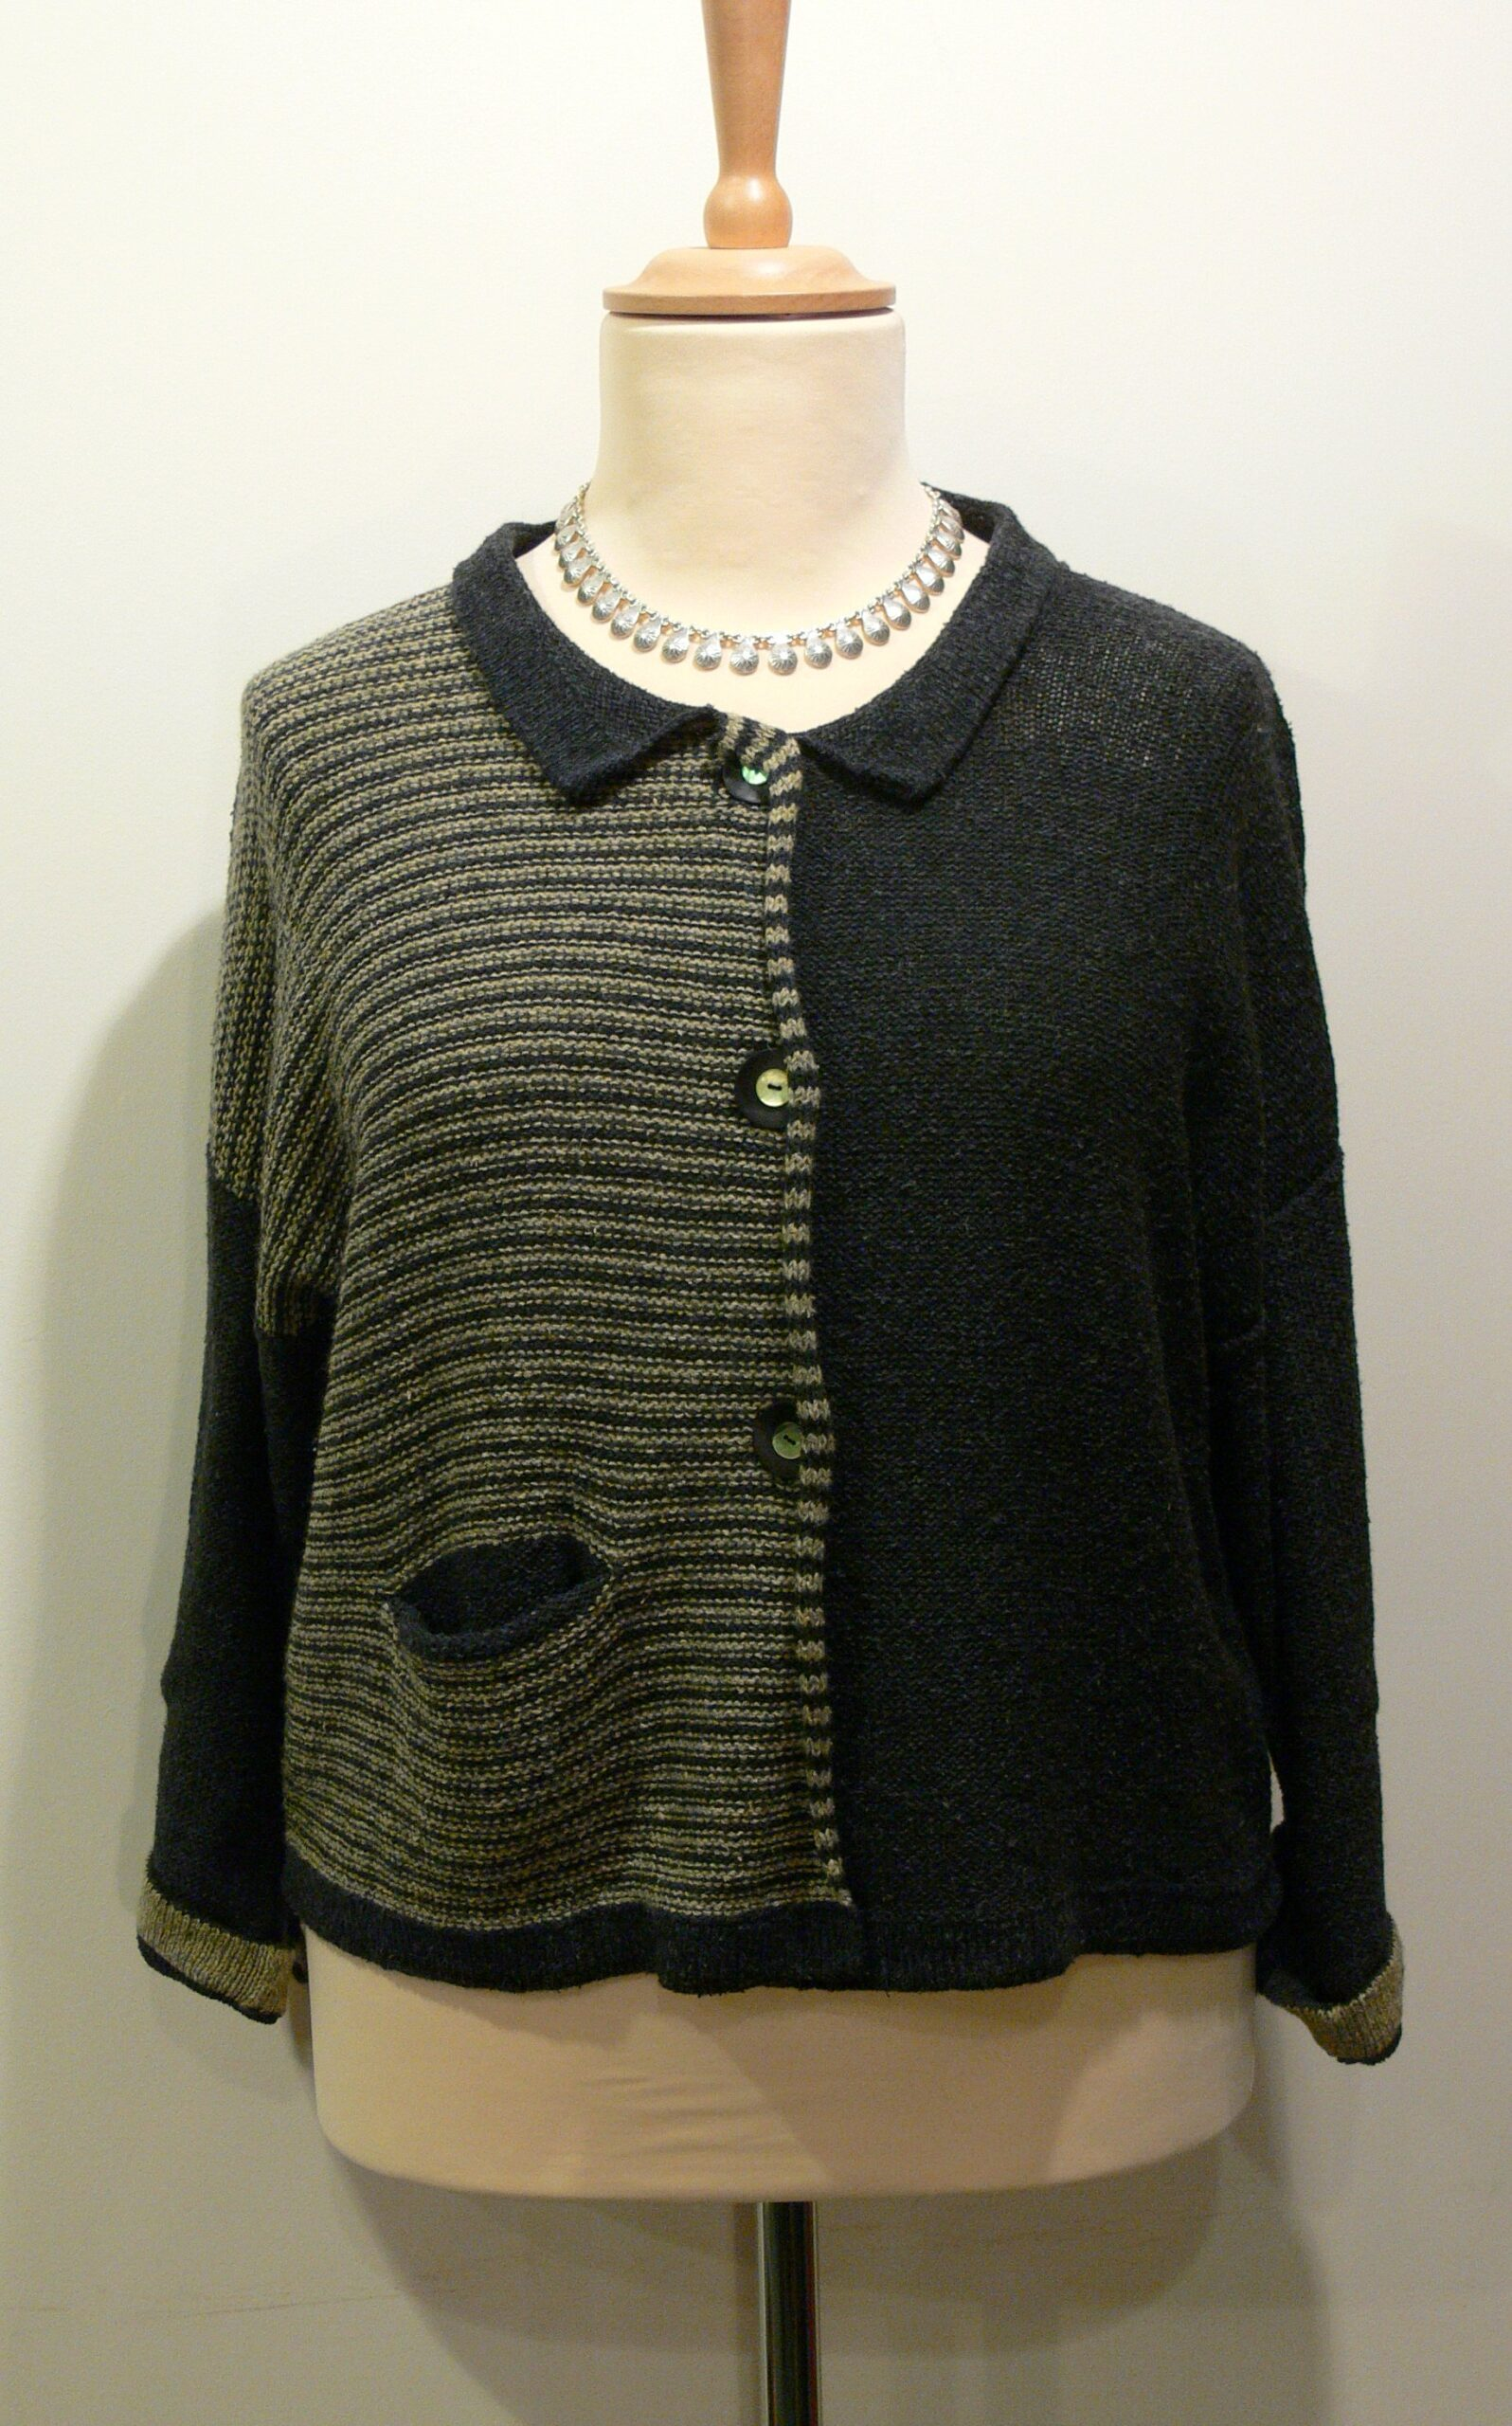 Aretha Short Jacket in graphite/biscuit. Knitted in silk/lambswool. designed and made in Orkney.